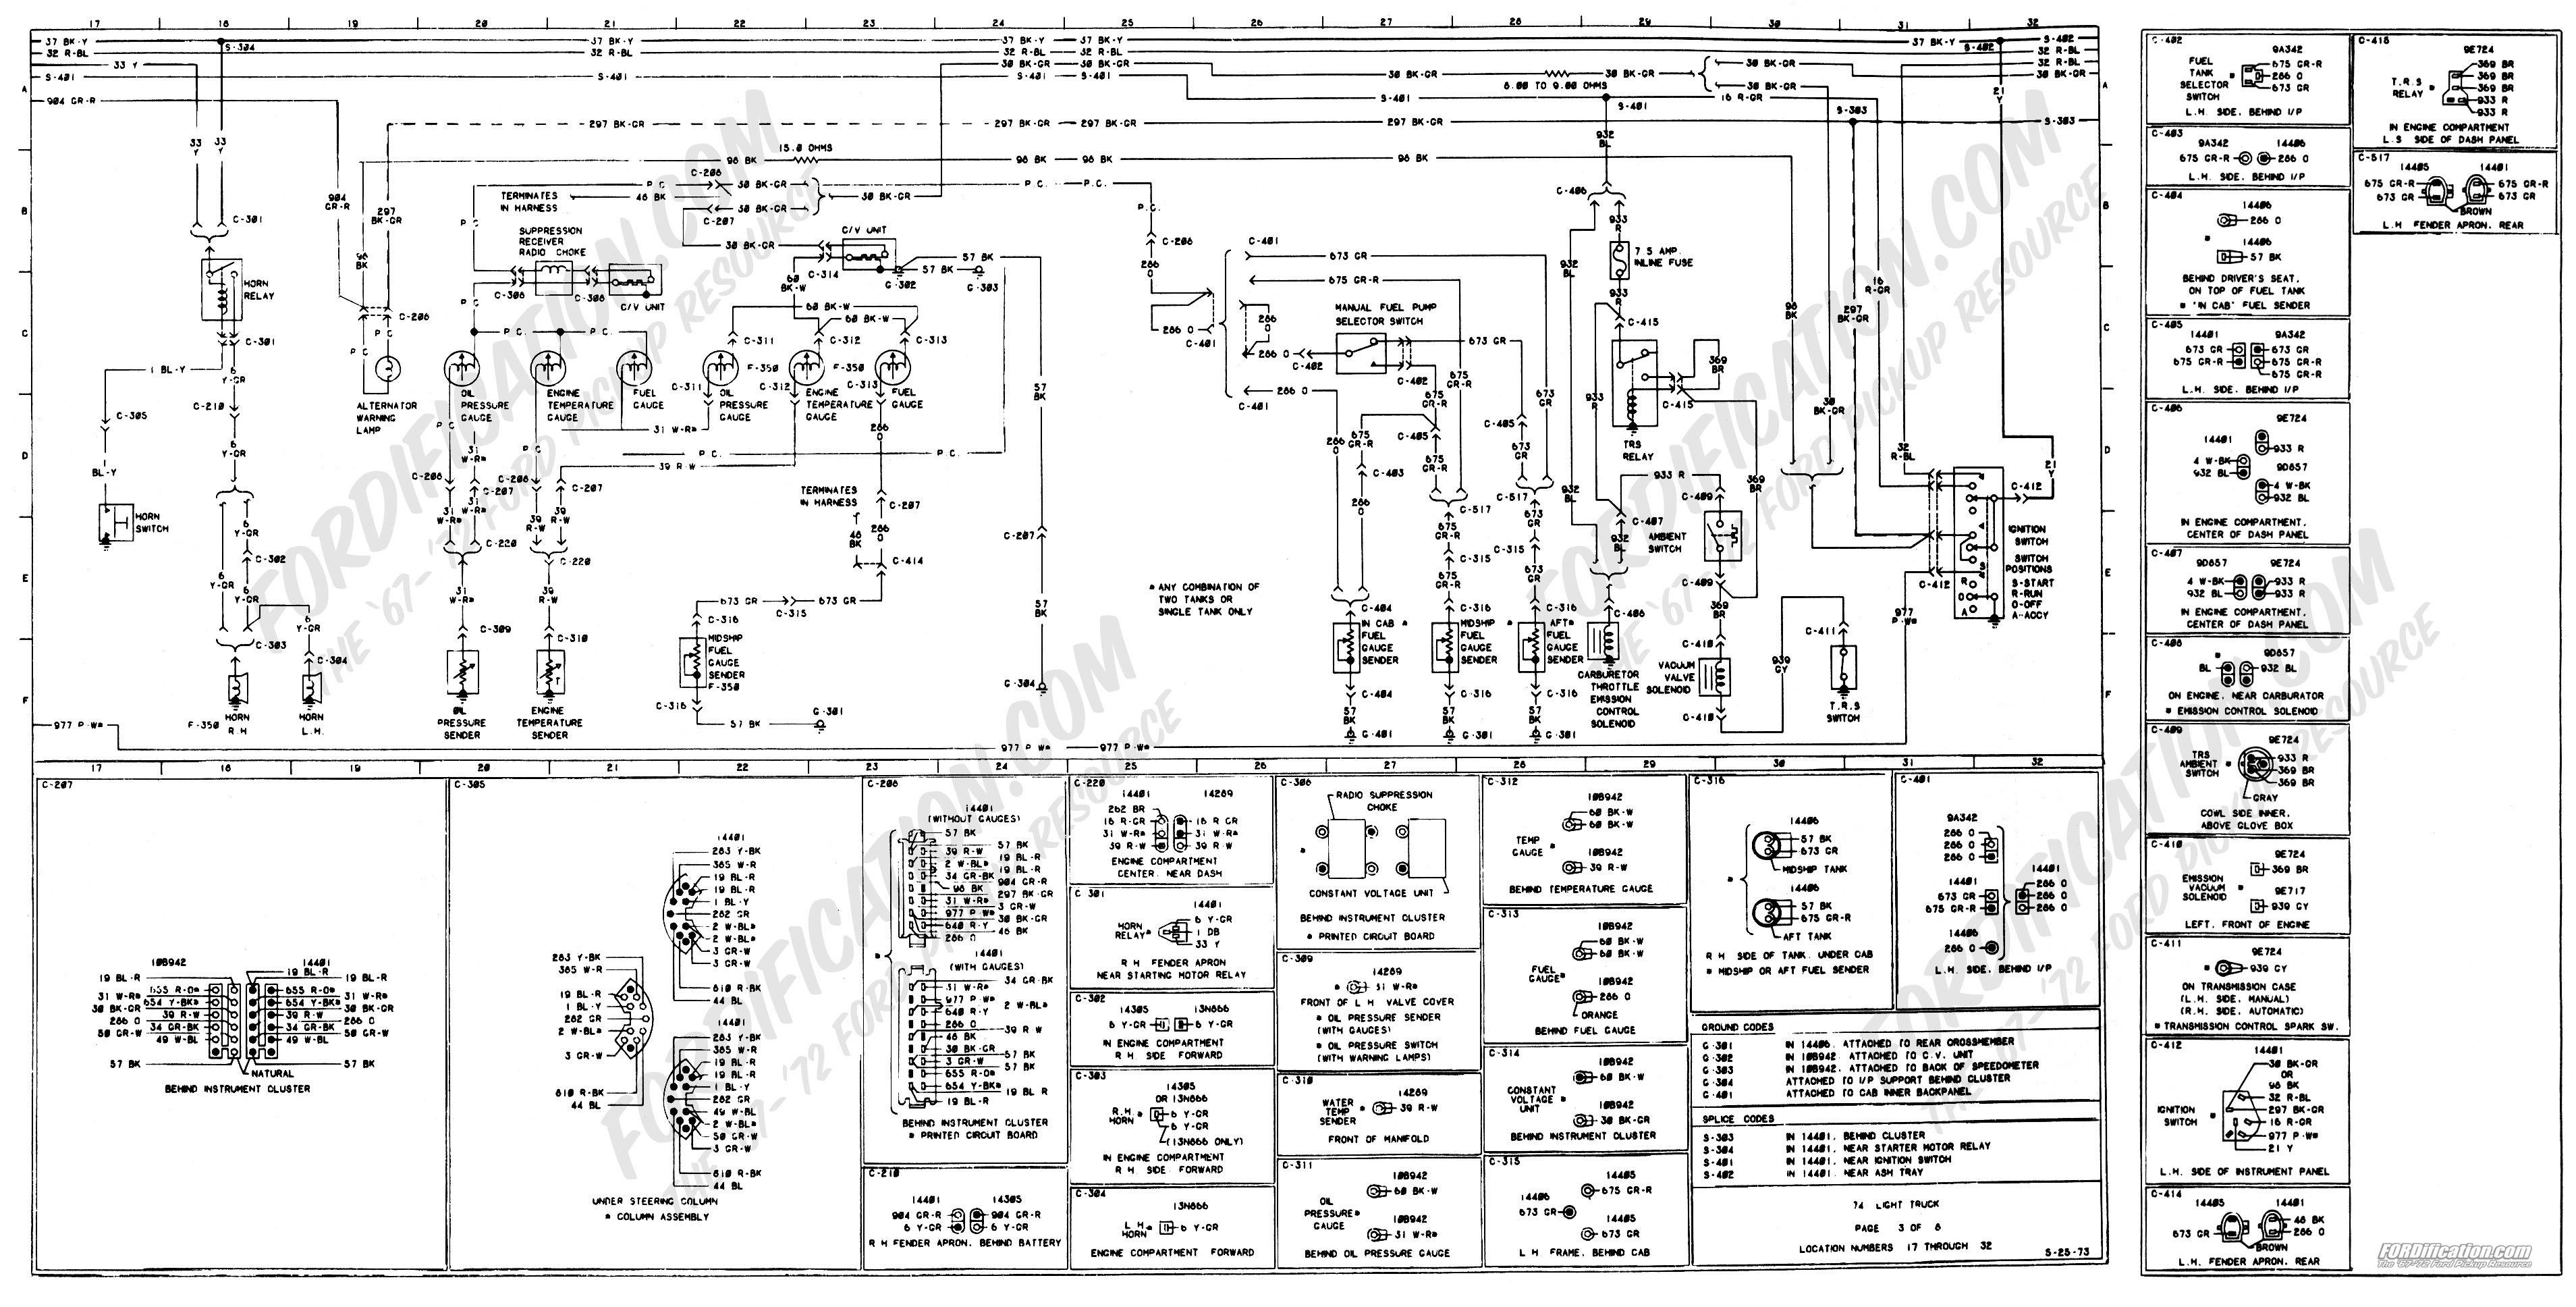 Pleasing 1973 F250 Wiring Diagram Today Diagram Data Schema Wiring Cloud Faunaidewilluminateatxorg